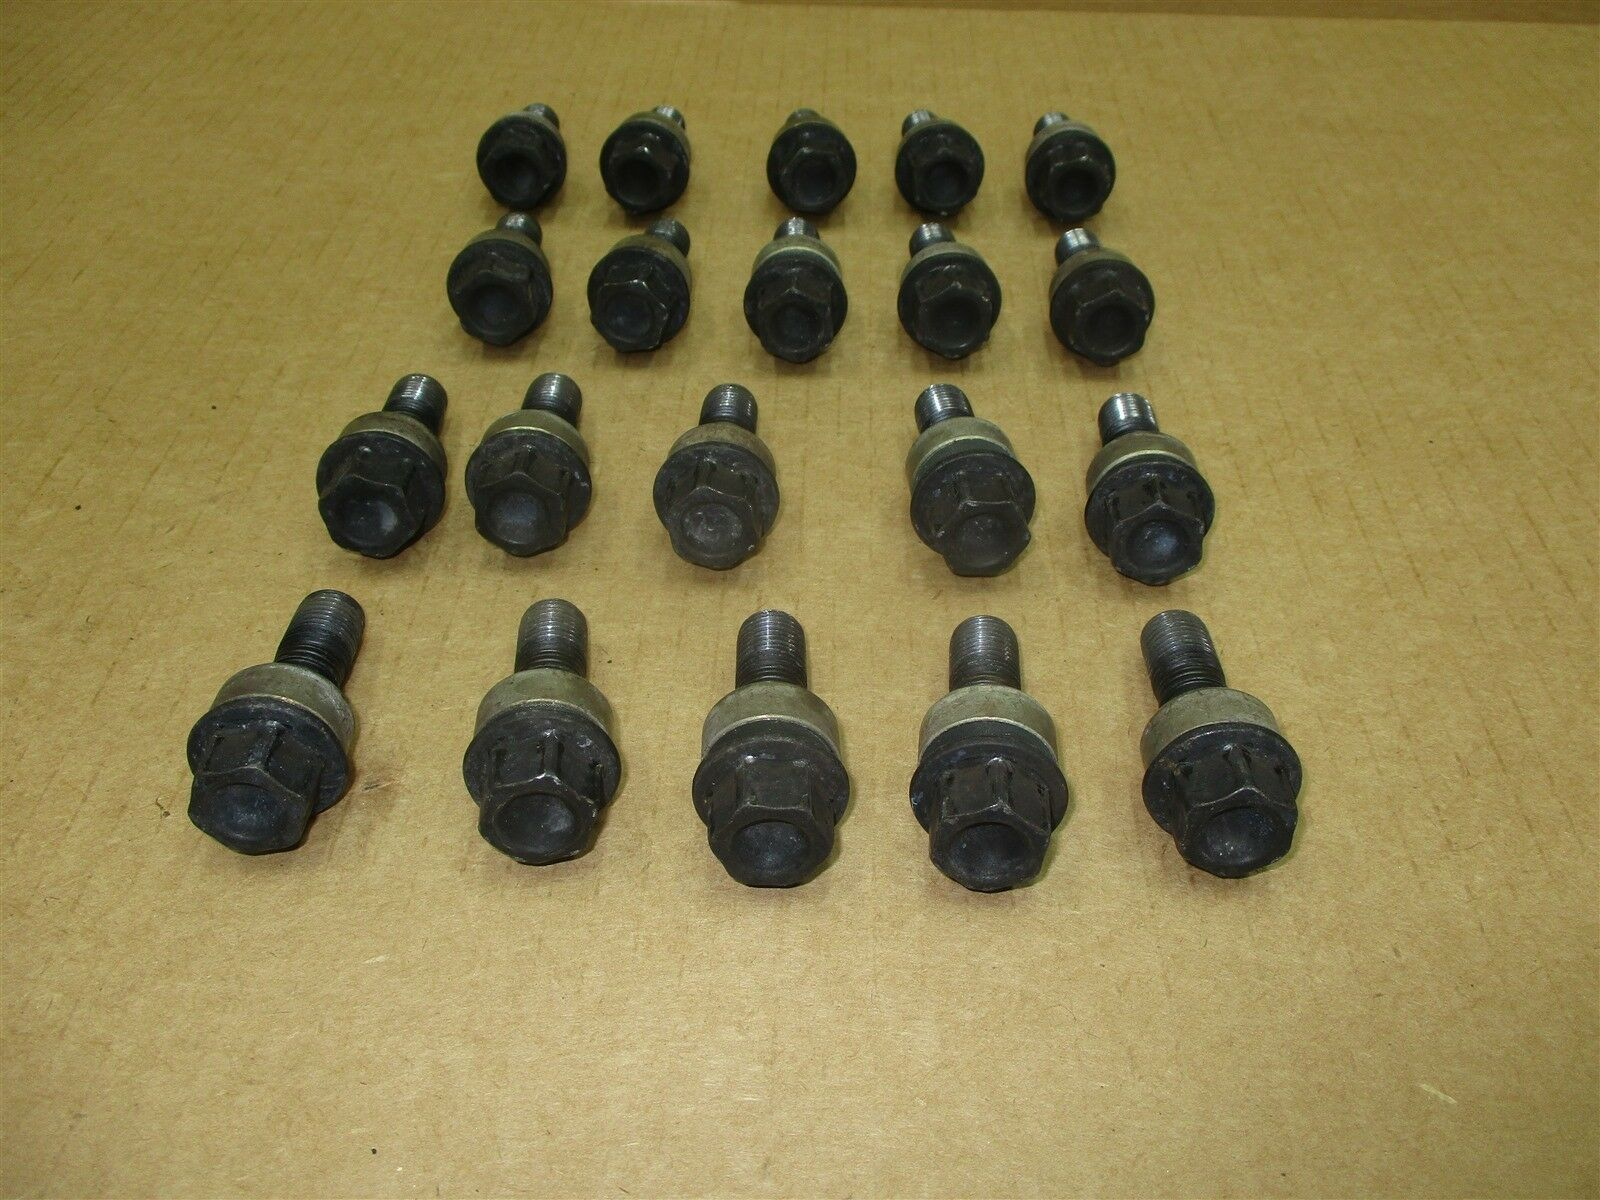 13 Boxster RWD Porsche 981 FRONT REAR 20 BOLTS Lug Nuts 36,797